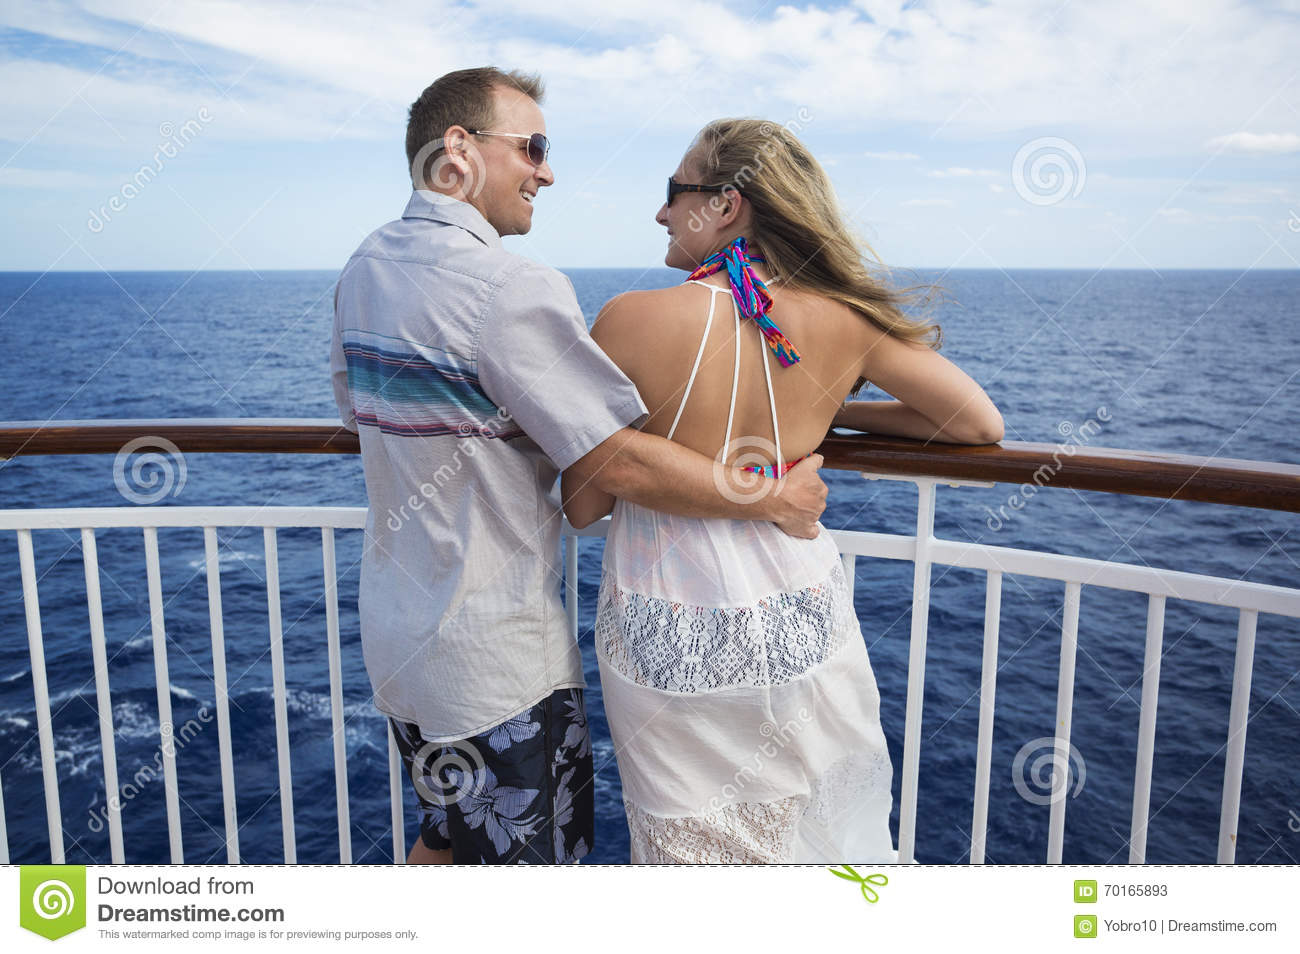 Happy Married Couple On A Cruise Together Stock Photo